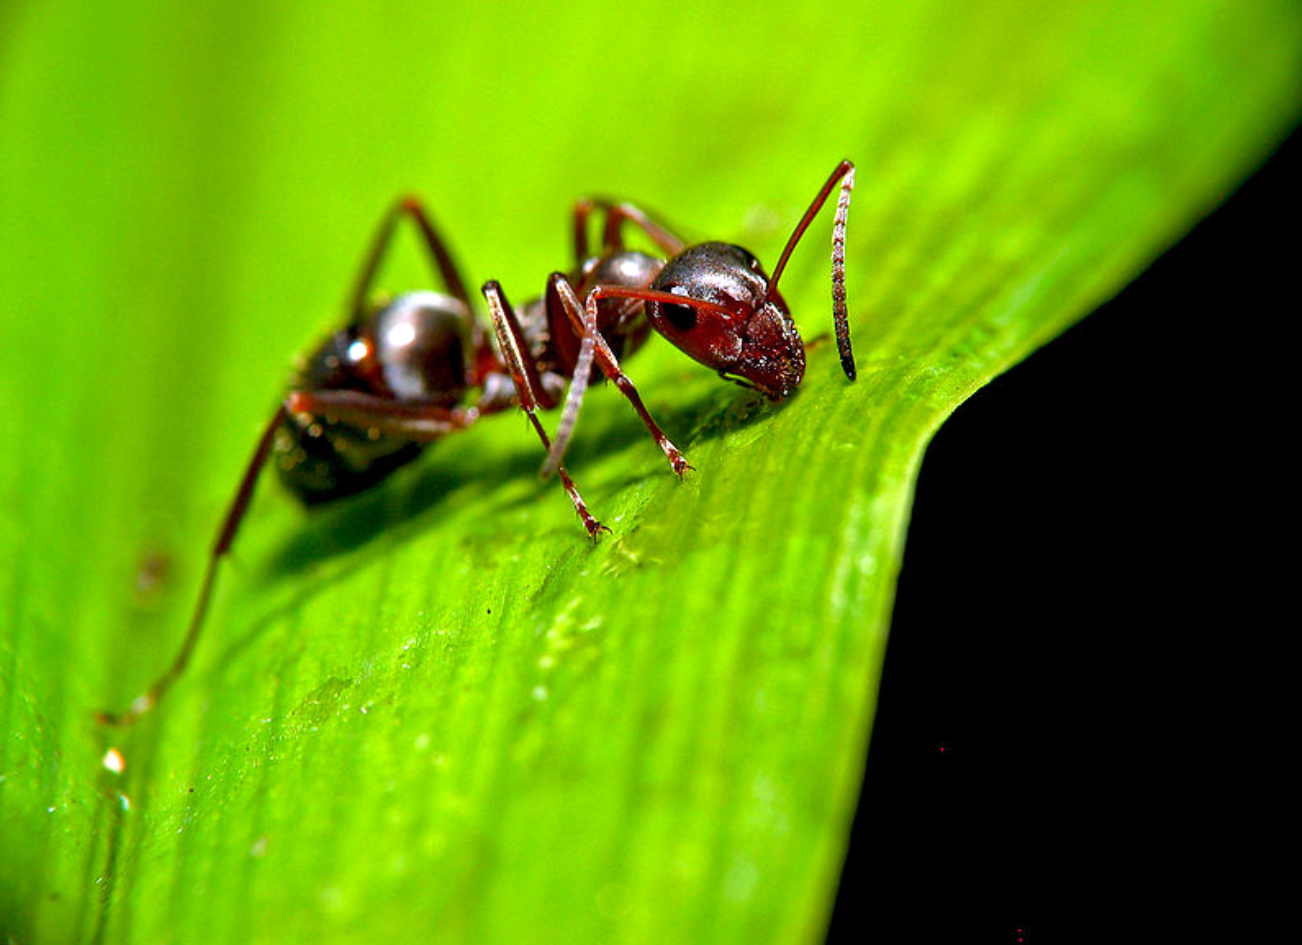 Stock photograph of an ant clinging to vegetation